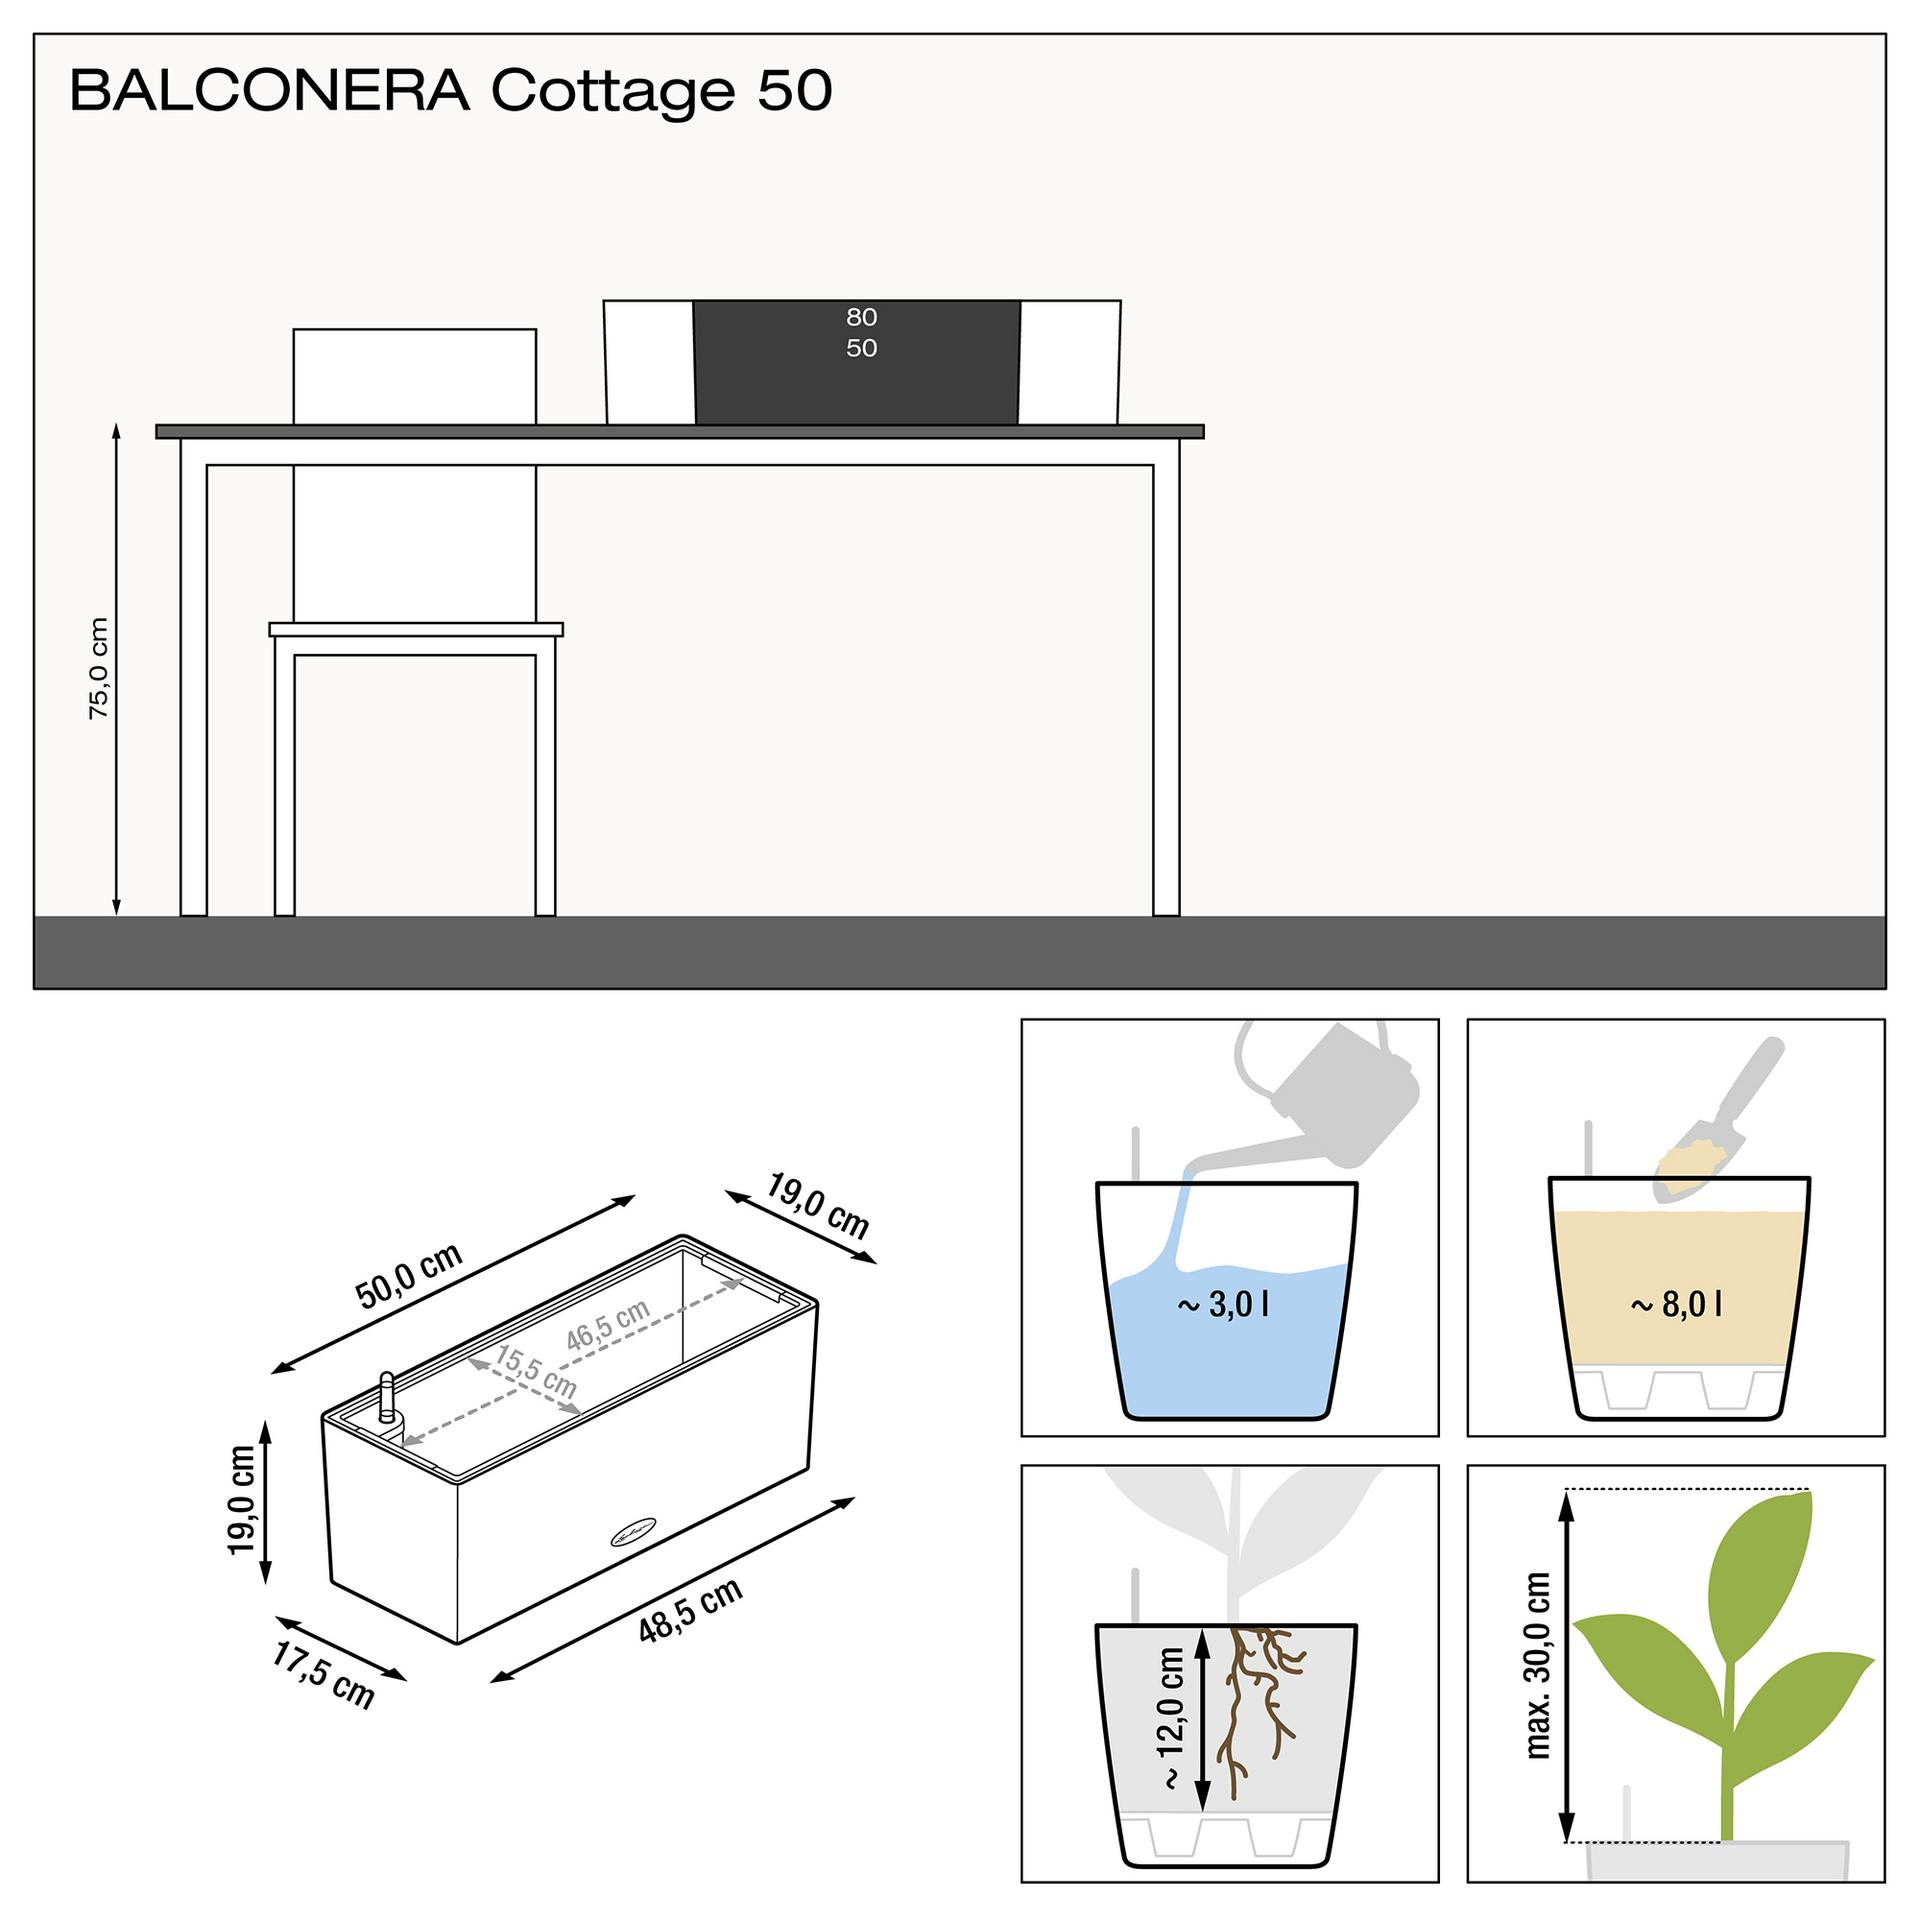 15602 BALCONERA Cottage 50 granit